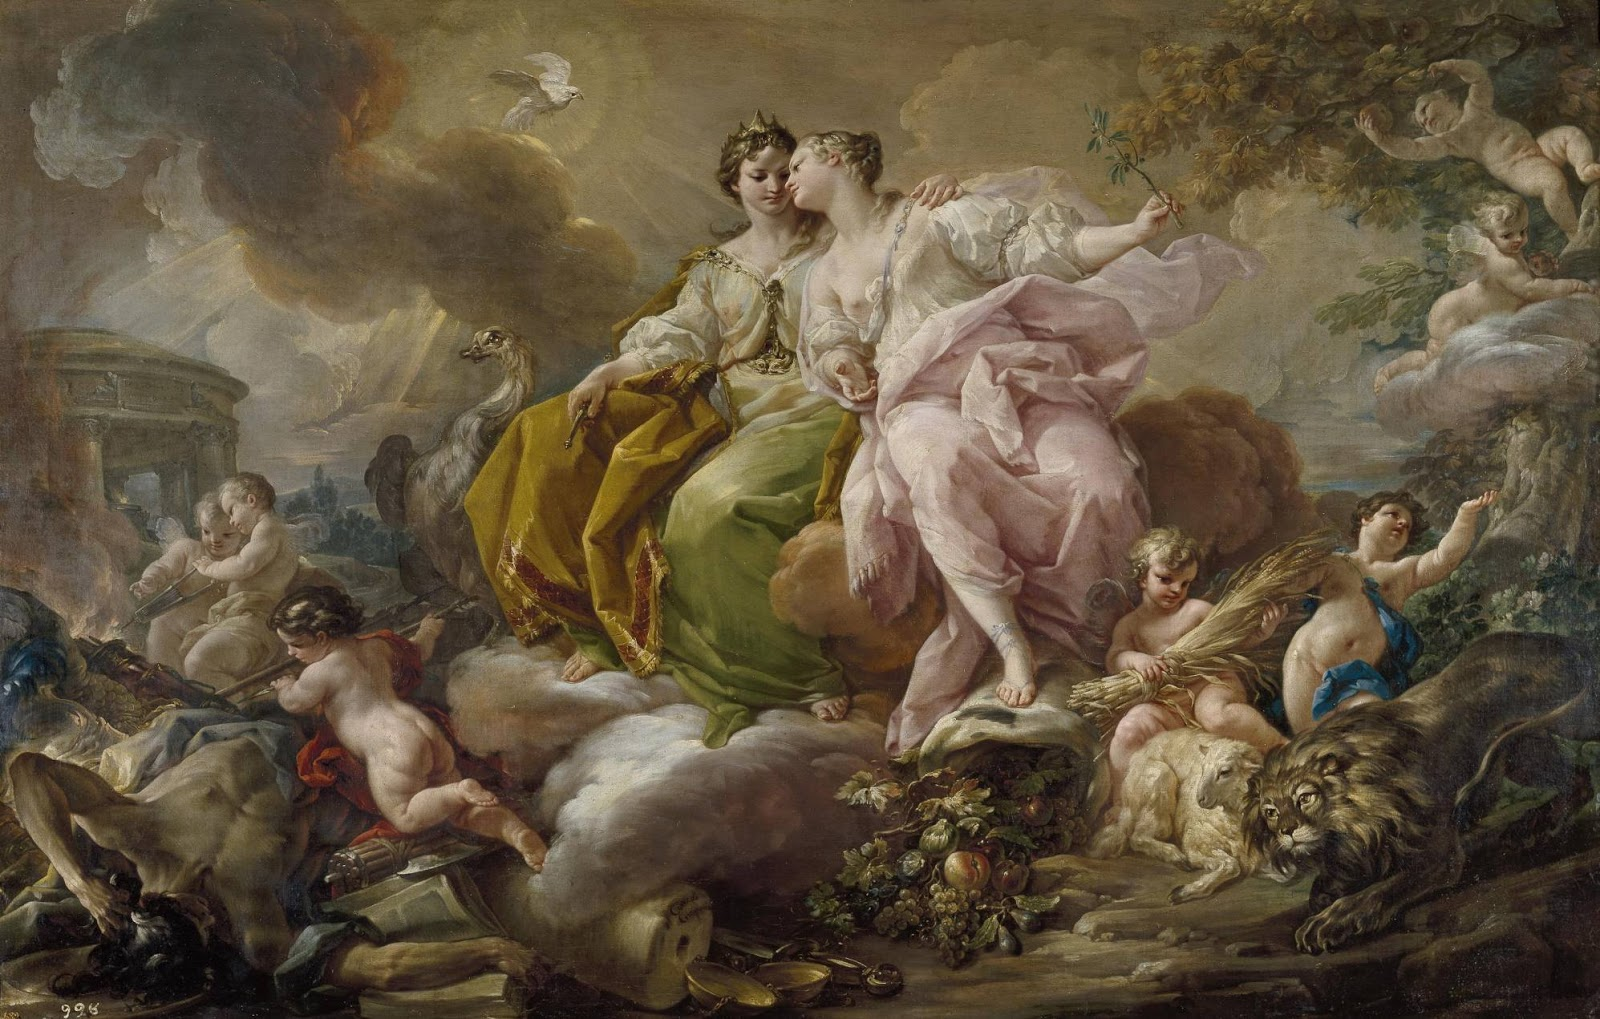 Spencer Alley Rococo Painting In Italy - Rococo painting